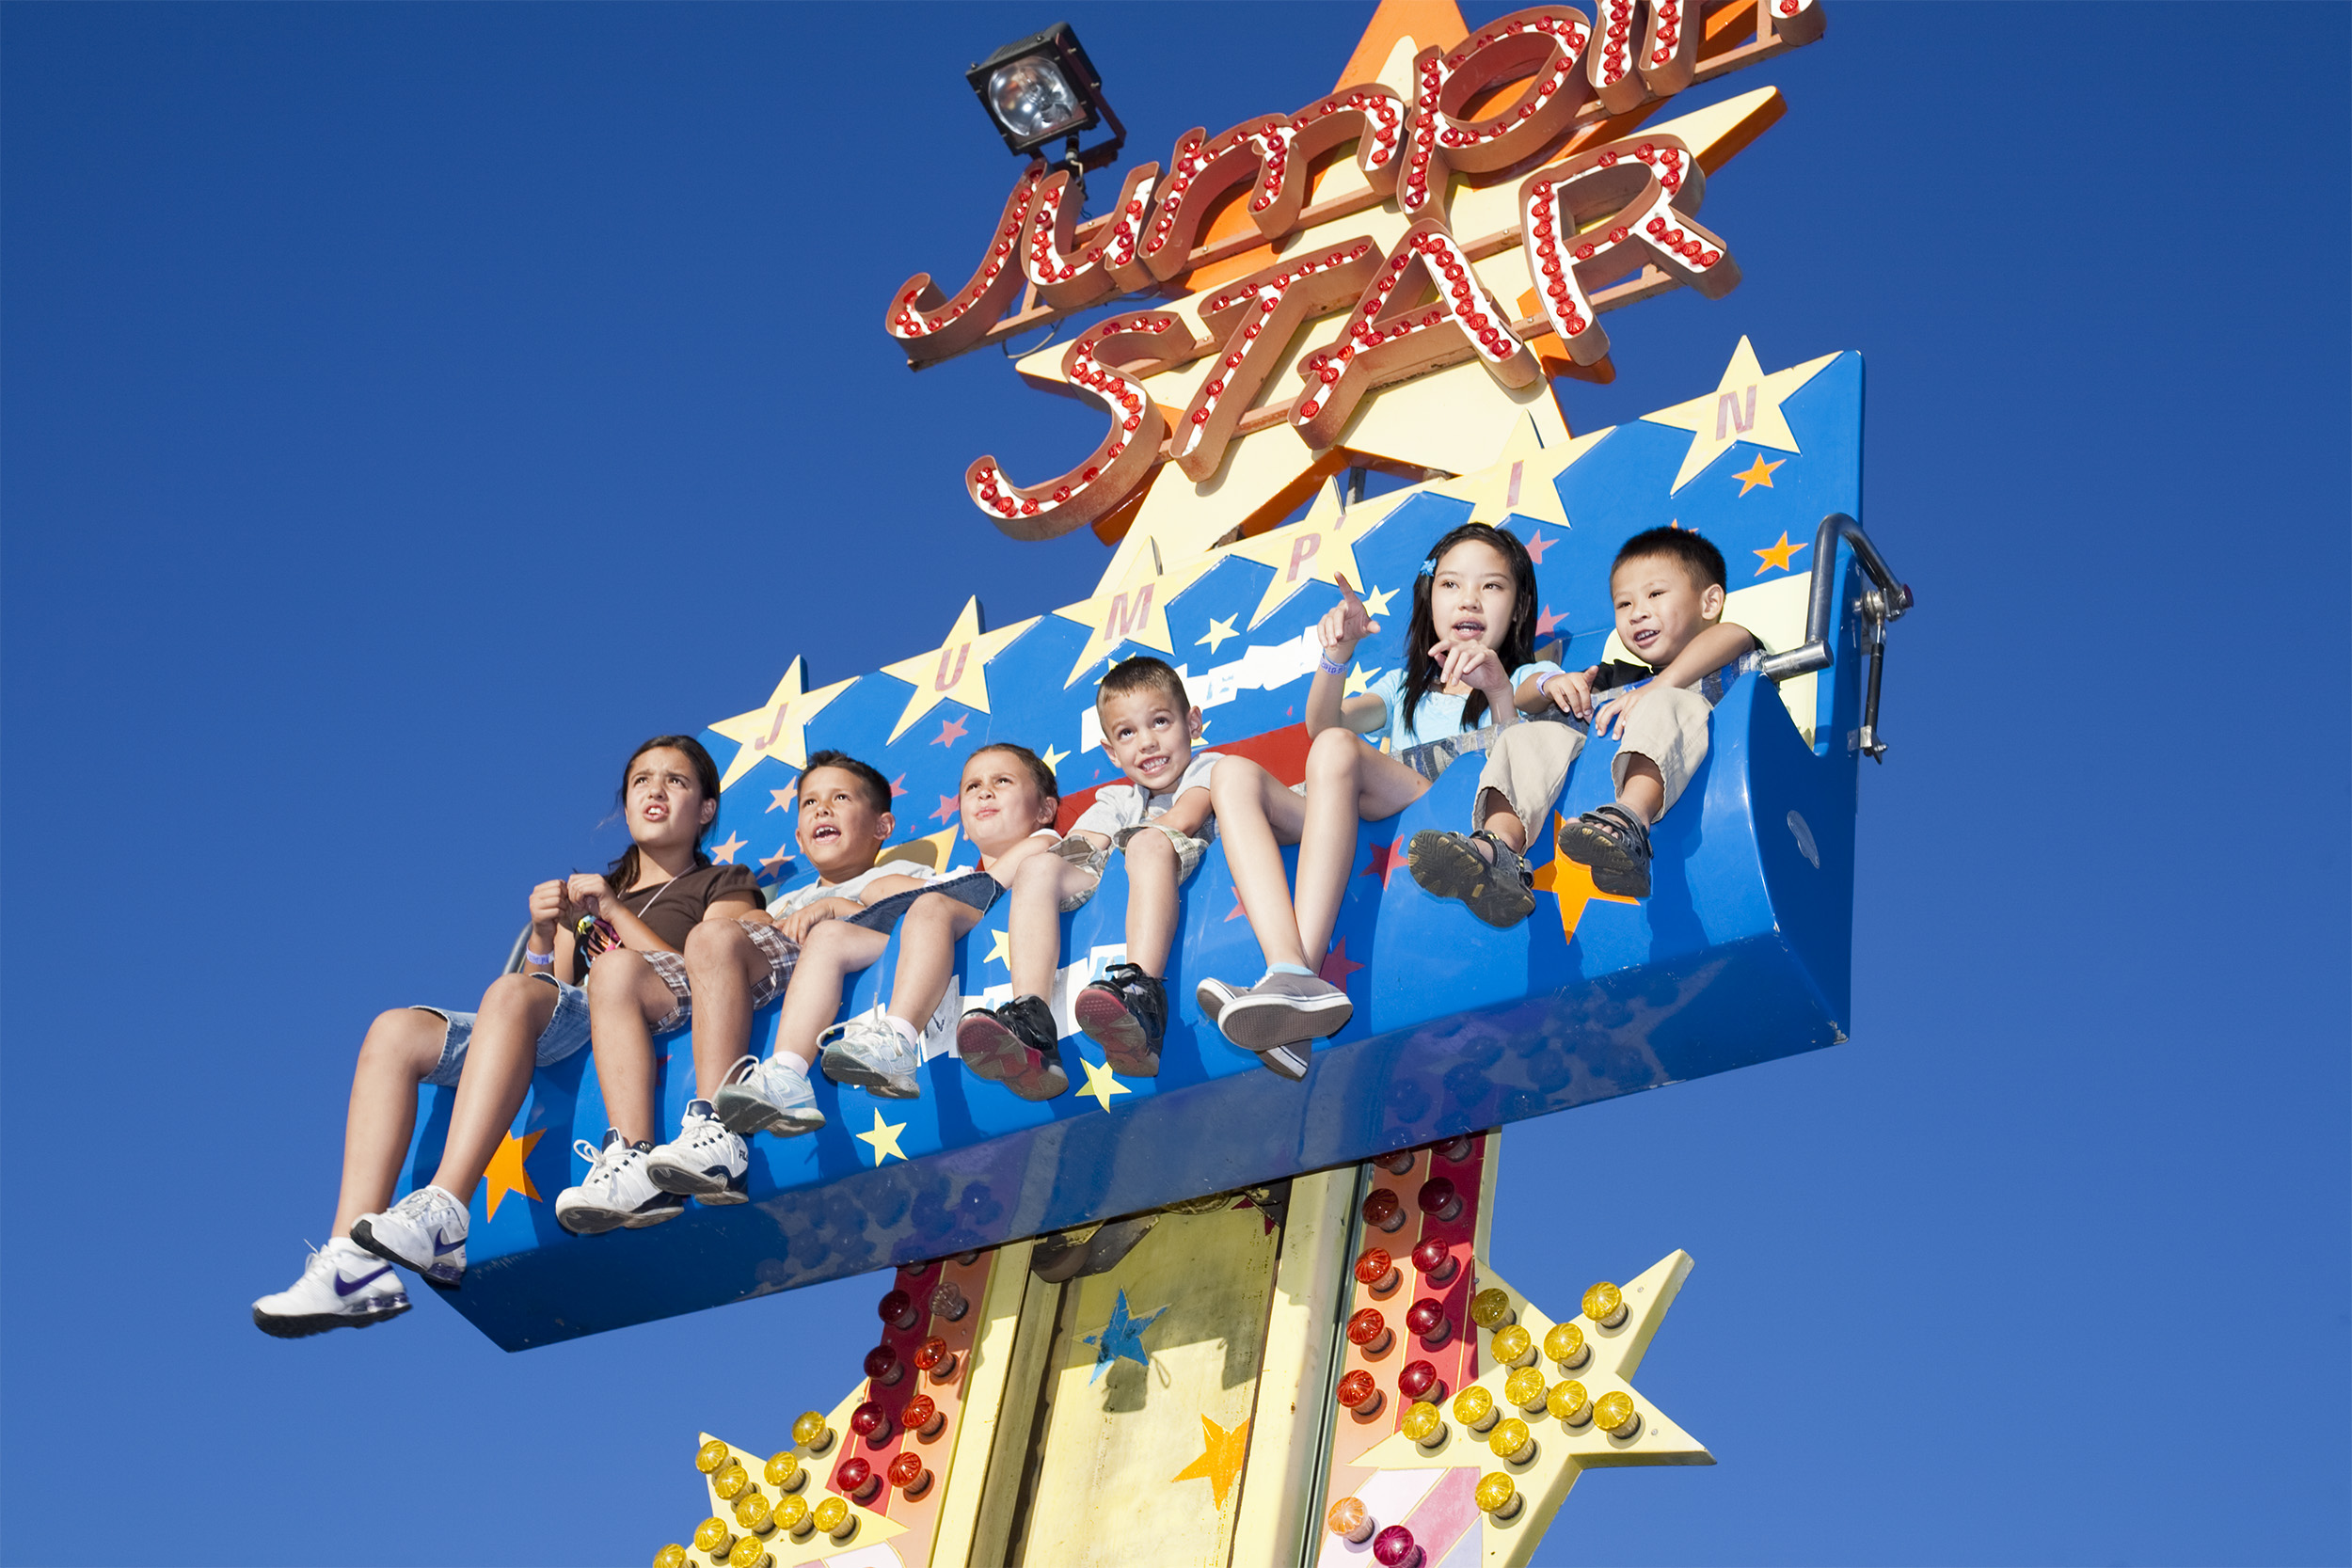 Children on Ride, New Mexico Expo, July 12, 2010